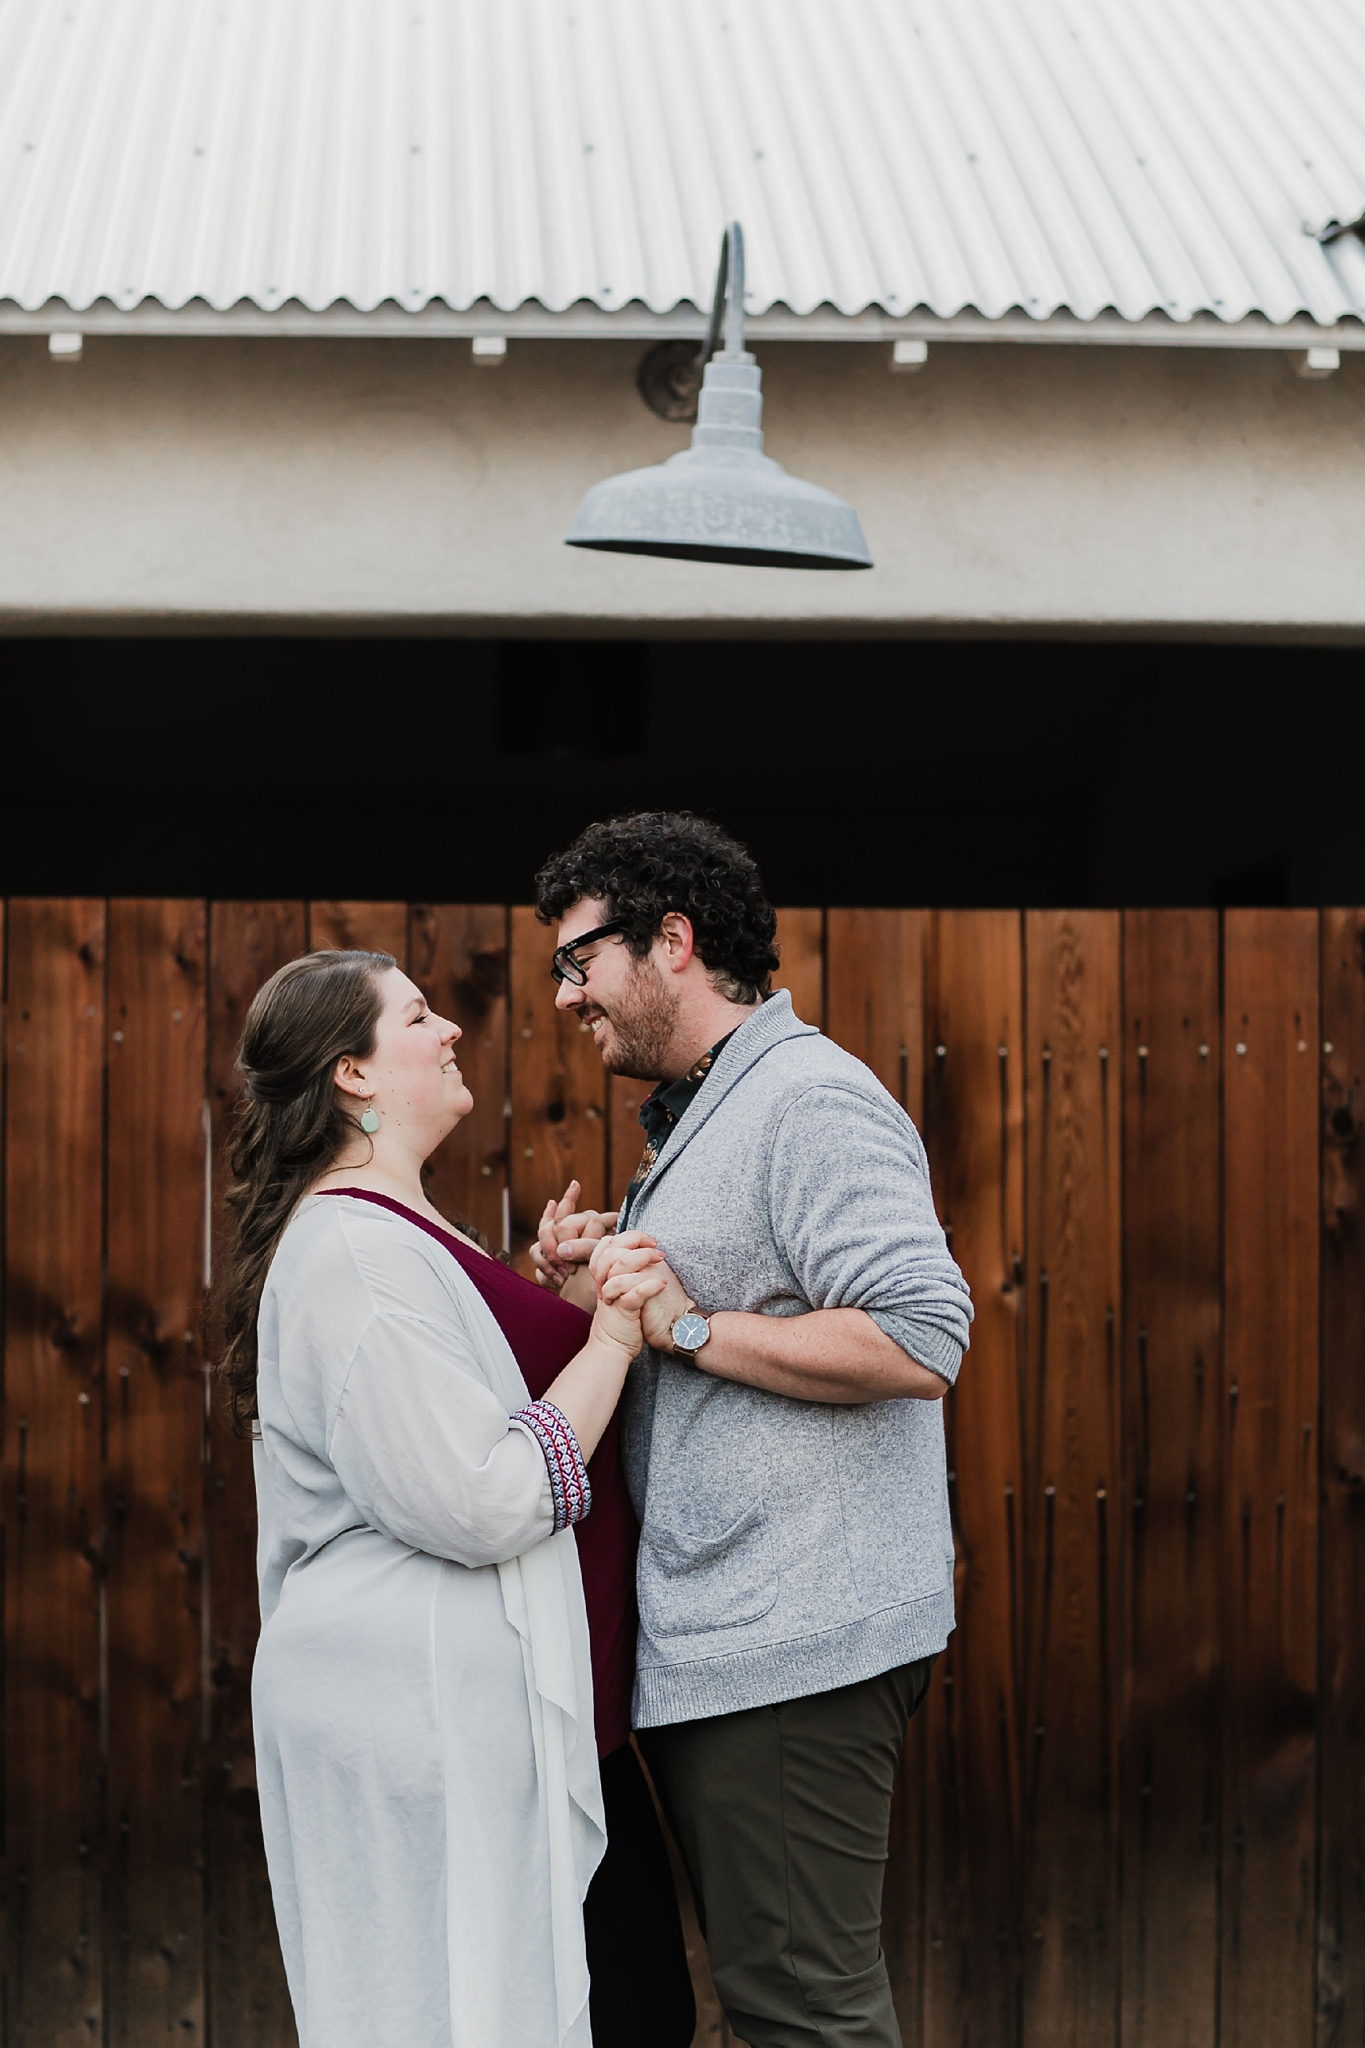 Alicia+lucia+photography+-+albuquerque+wedding+photographer+-+santa+fe+wedding+photography+-+new+mexico+wedding+photographer+-+new+mexico+wedding+-+los+poblanos+engagement+-+los+poblanos+wedding+-+farm+wedding+-+lavender+farm+wedding_0028.jpg